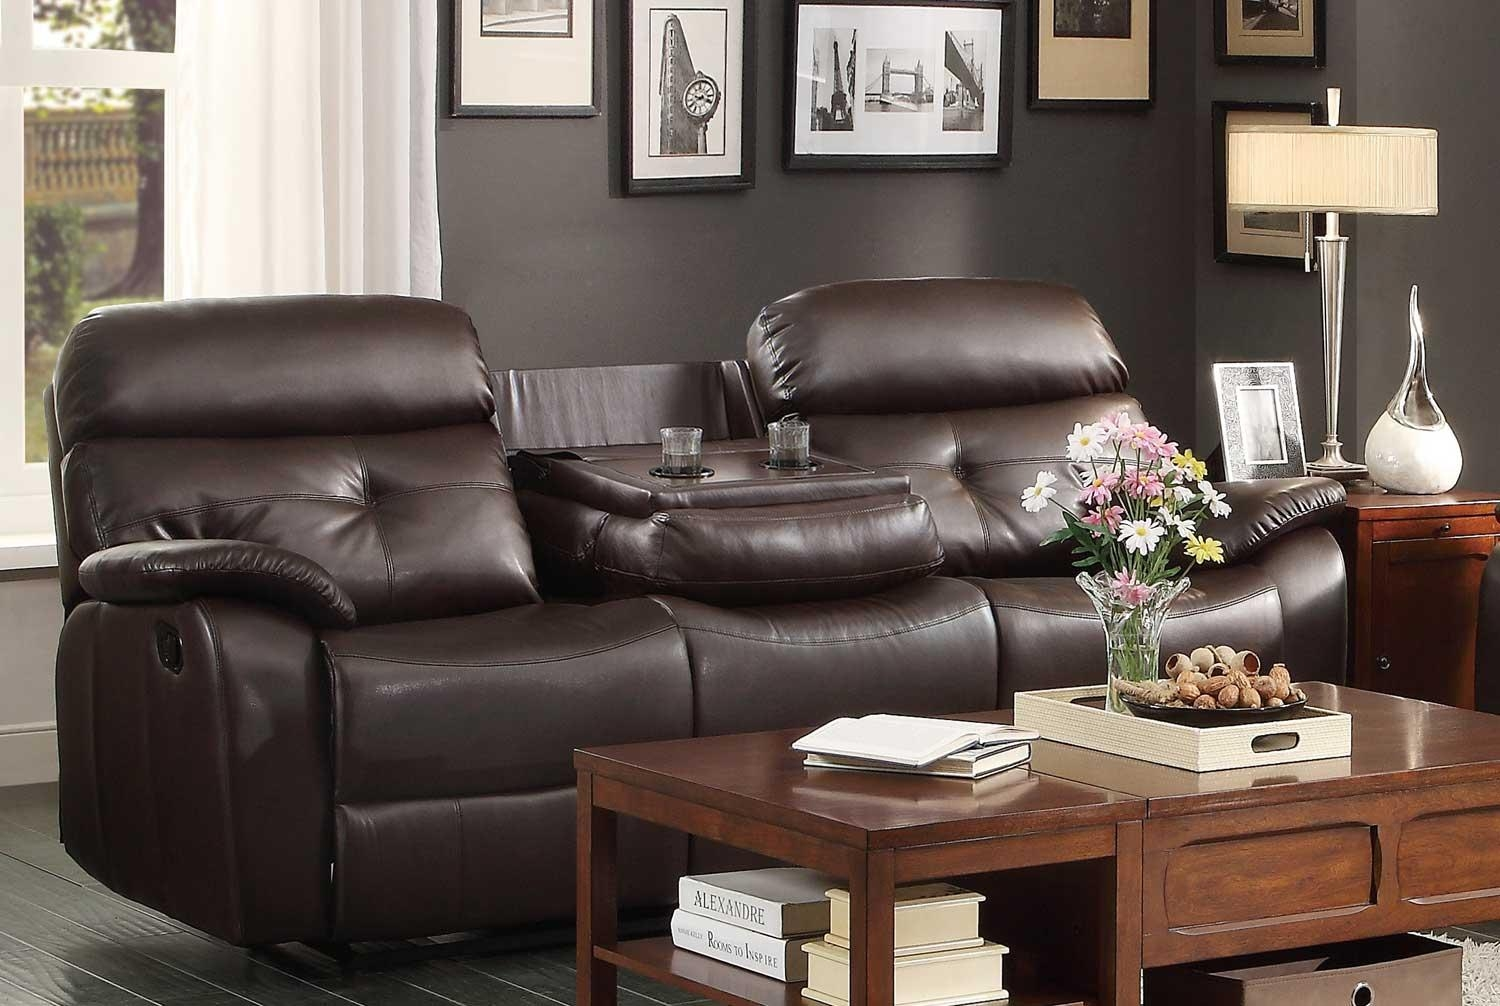 Furniture Reclining Sofas With Cup Holders Recliner For Sale And Intended For Sofas With Cup Holders (Image 6 of 20)